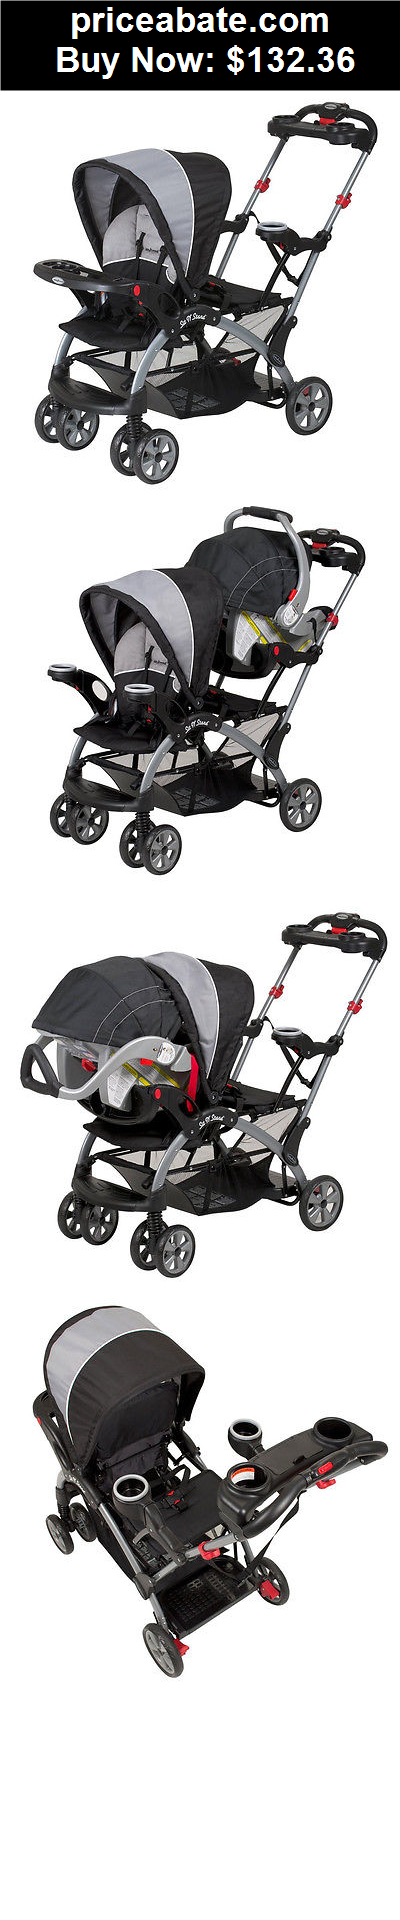 Baby BRAND NEW! Baby Trend Sit N Stand Ultra Tandem